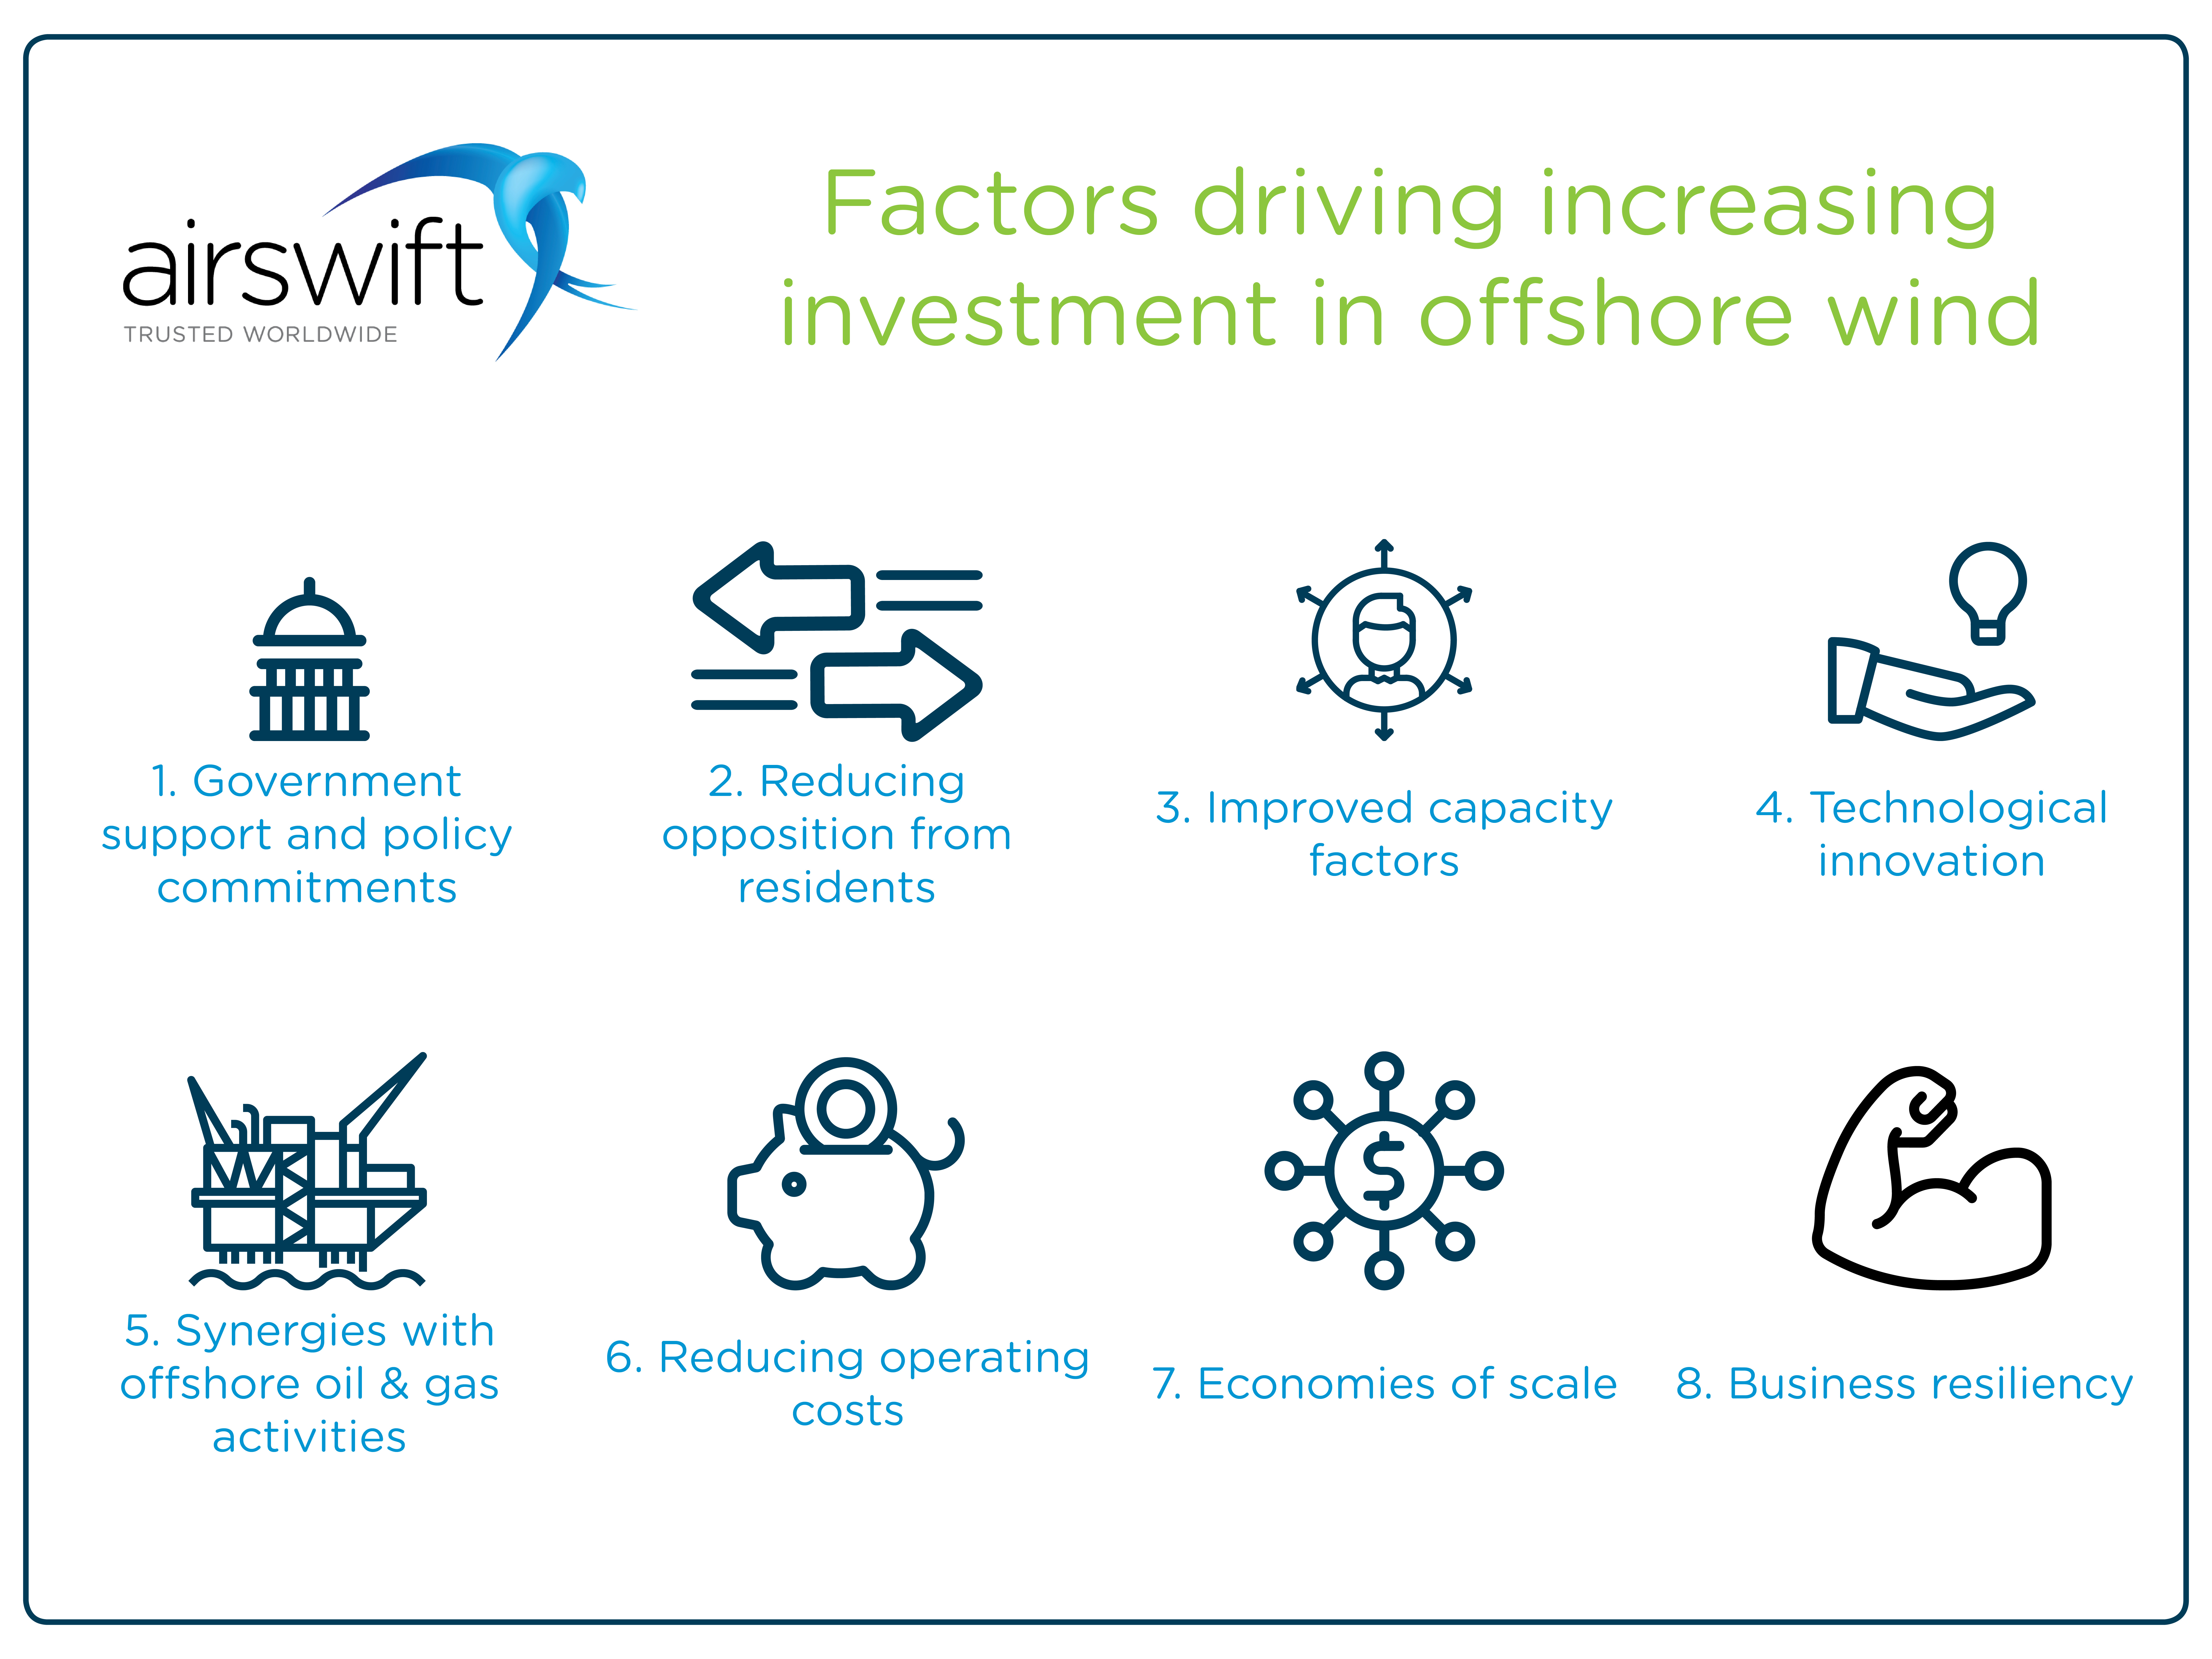 What is driving increasing investment in offshore wind?